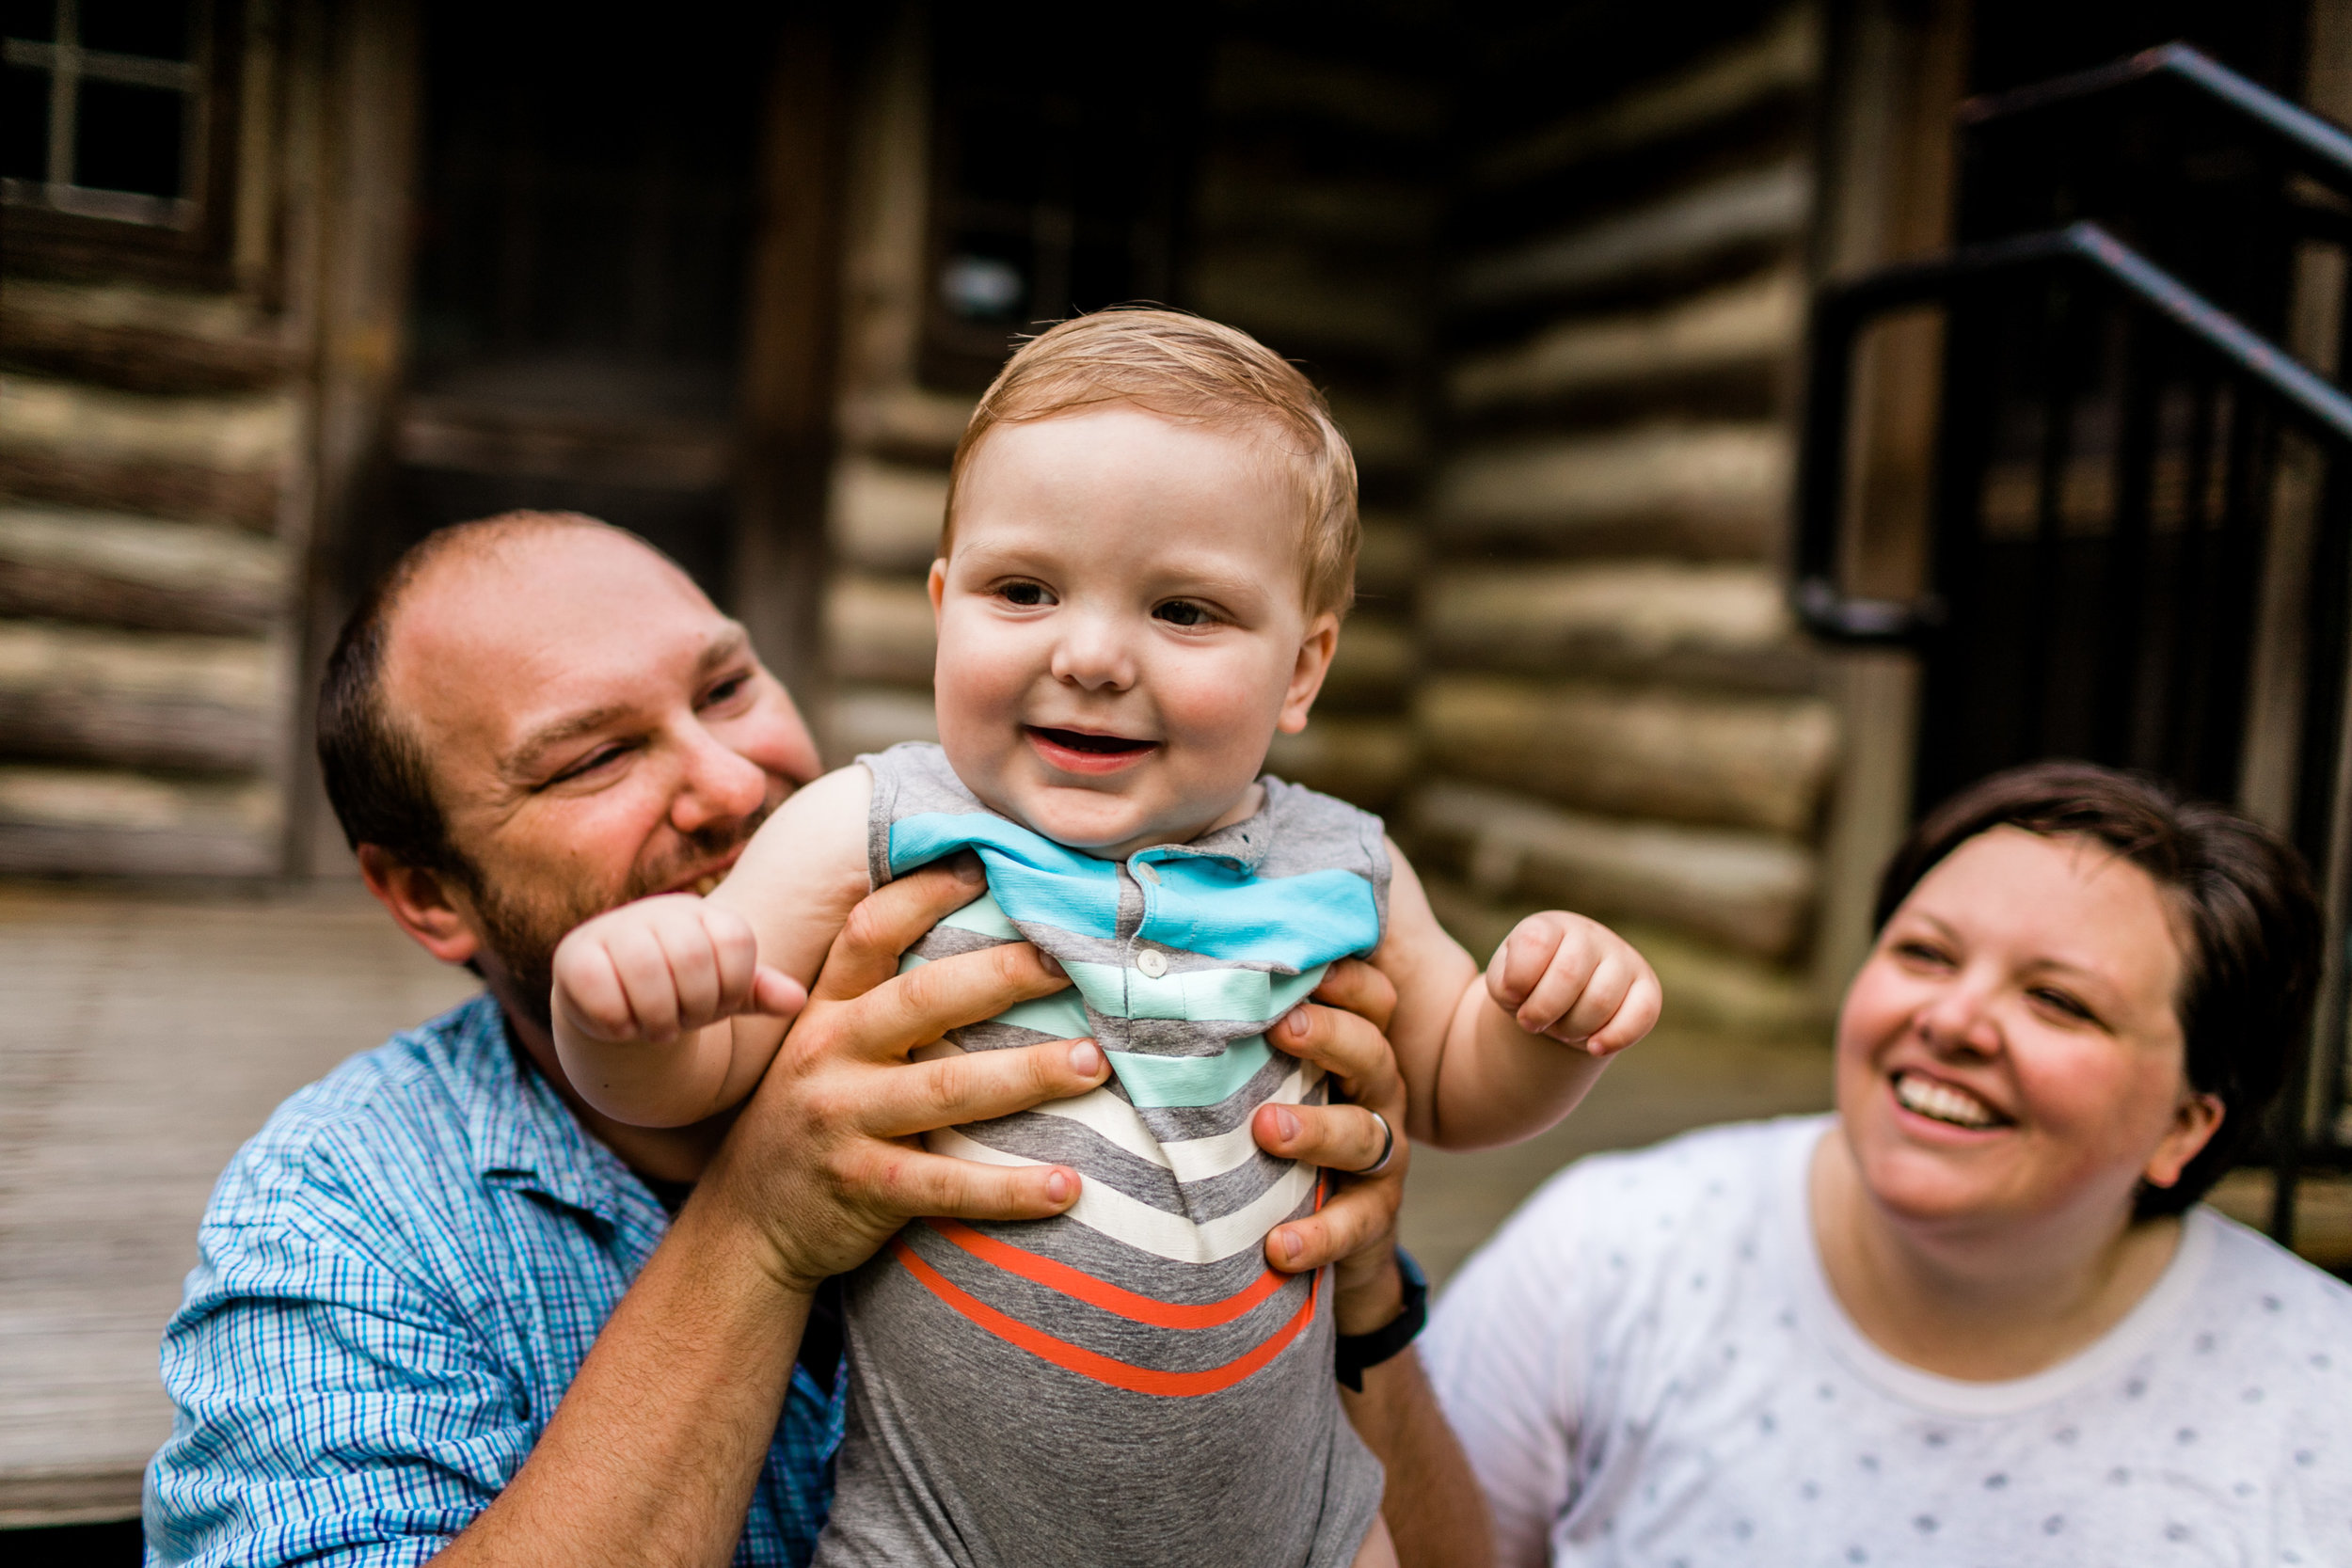 Durham Family Photographer | By G. Lin Photography | Baby boy smiling with parents in the background | Spruce Pine Lodge Bahama NC